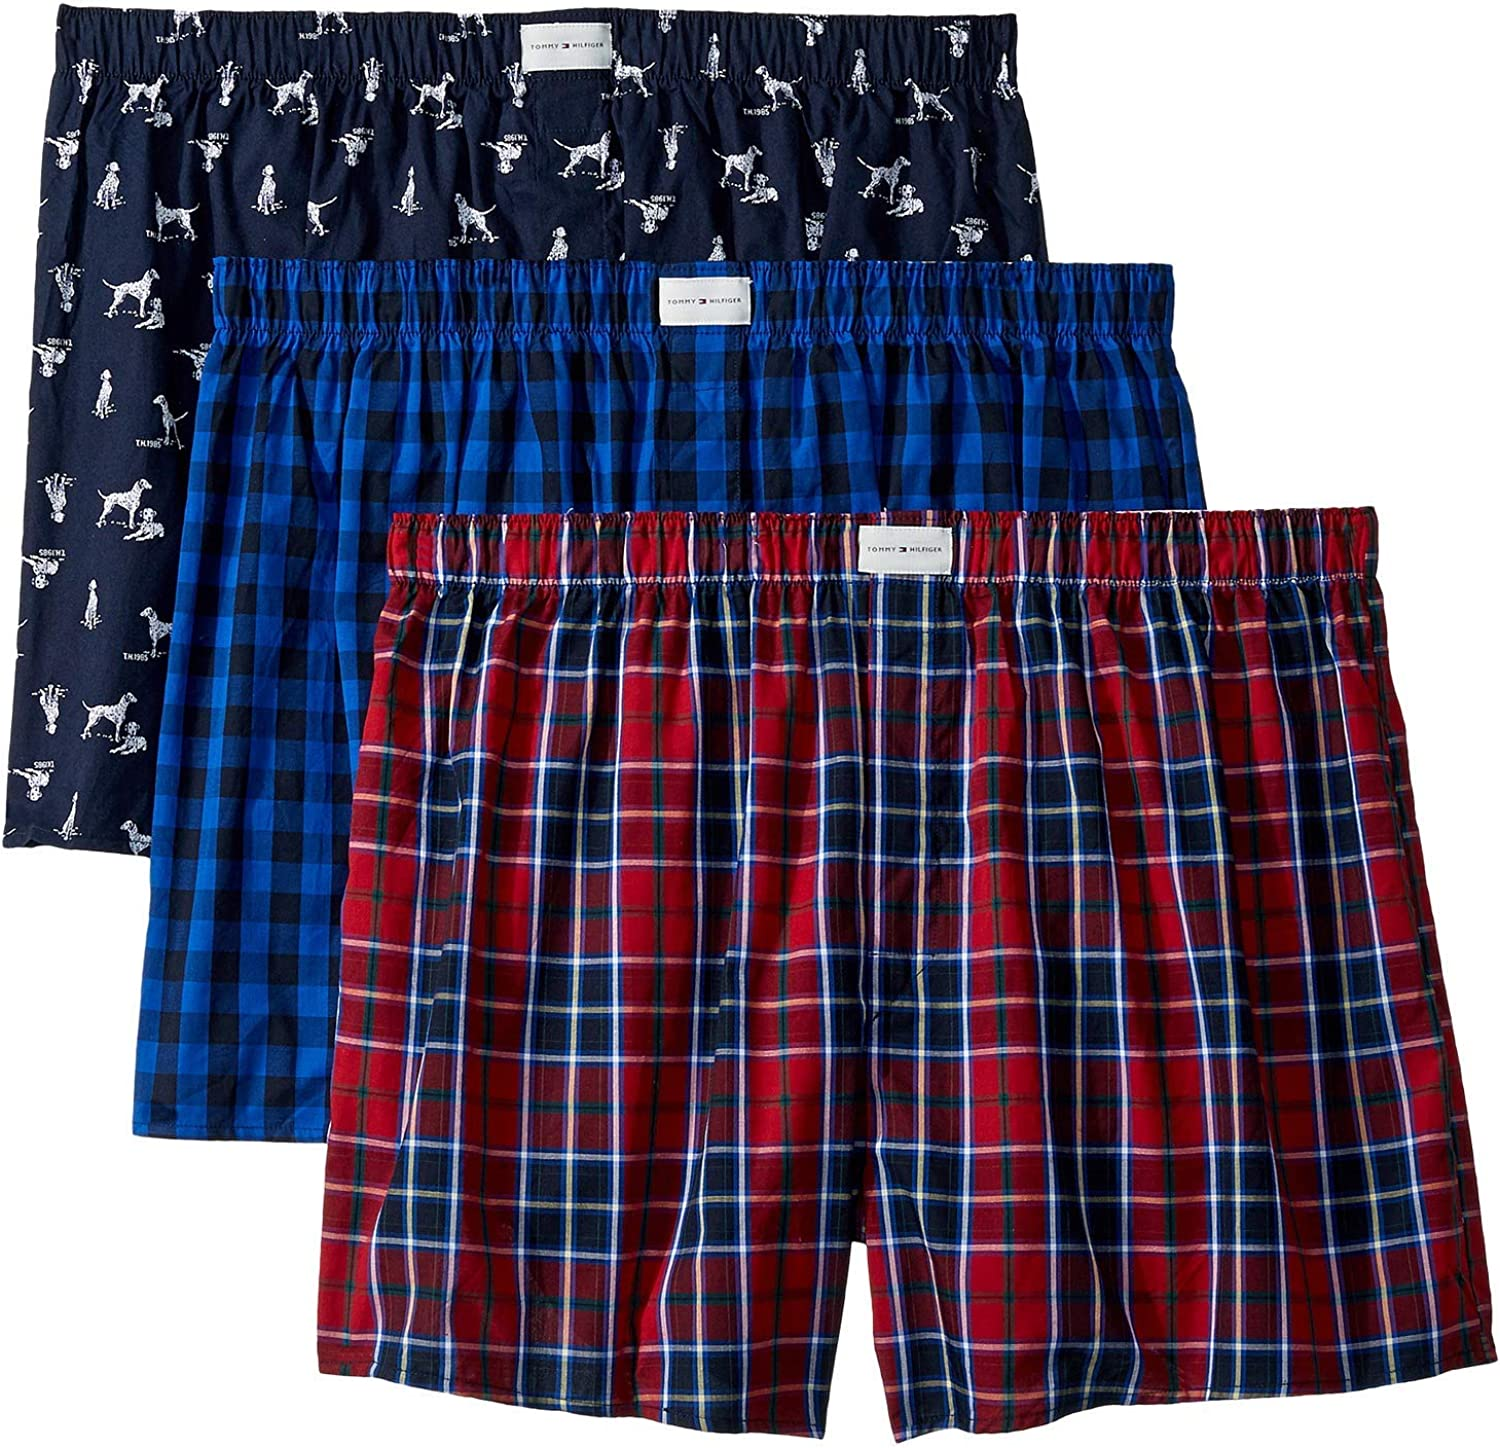 Tommy Hilfiger Mens Underwear Multipack Cotton Classics Woven Boxer